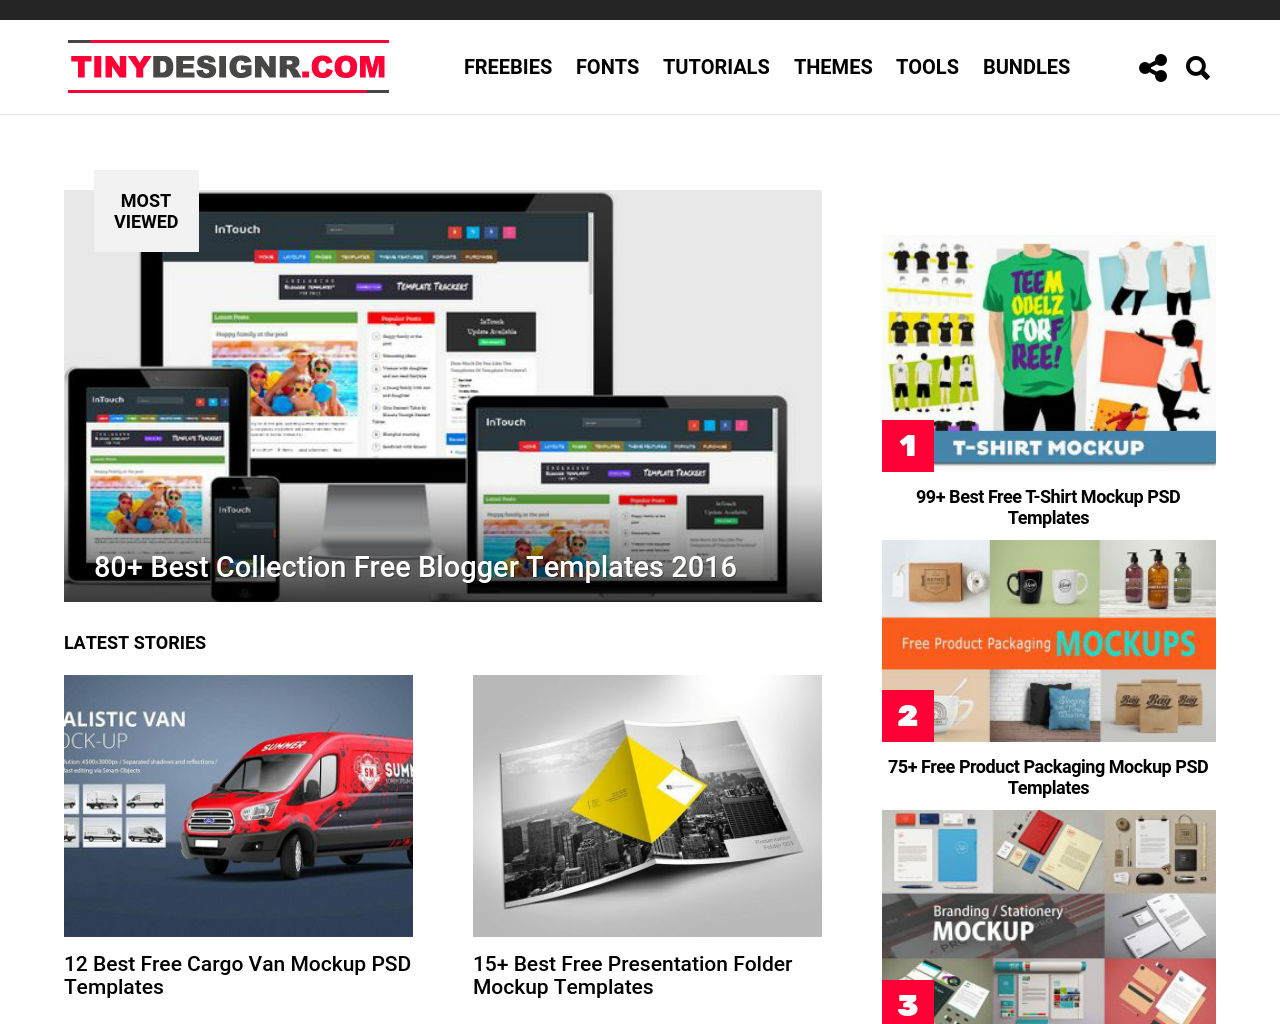 TinyDesignr-Advertising-Reviews-Pricing